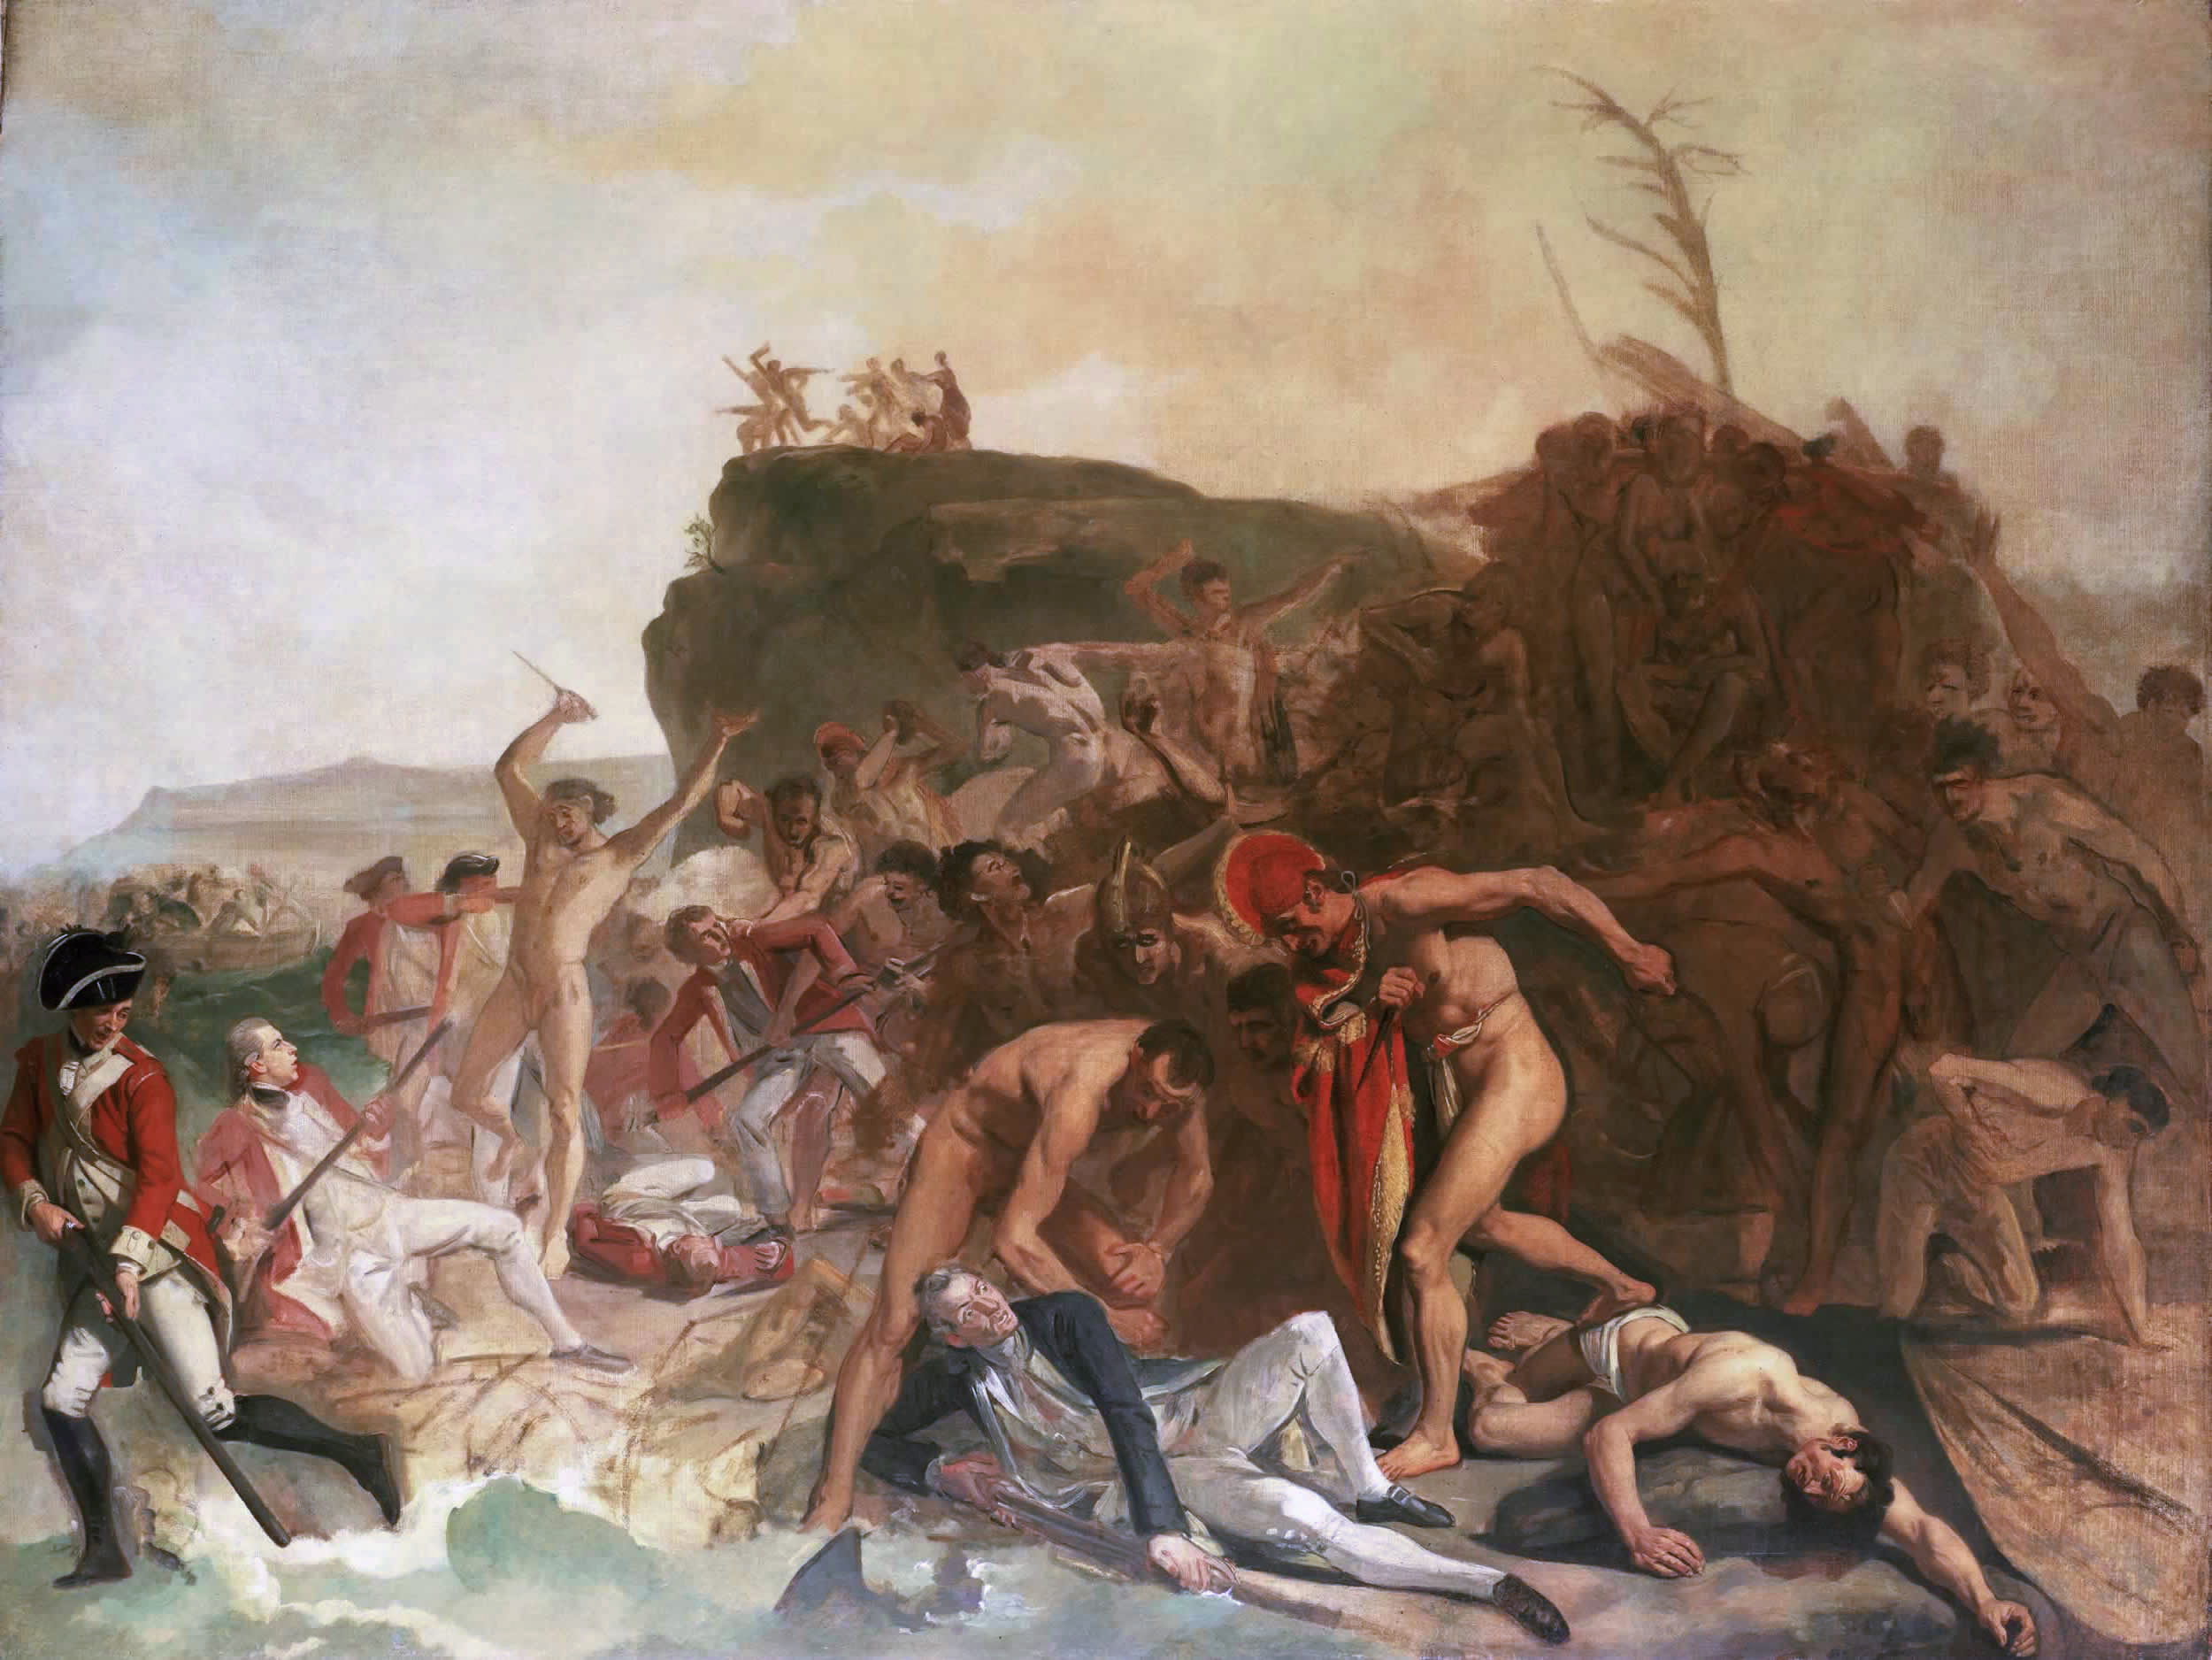 'The Death of Captain James Cook, 14 February 1779', an unfinished painting by Johan Zoffany, circa 1795.